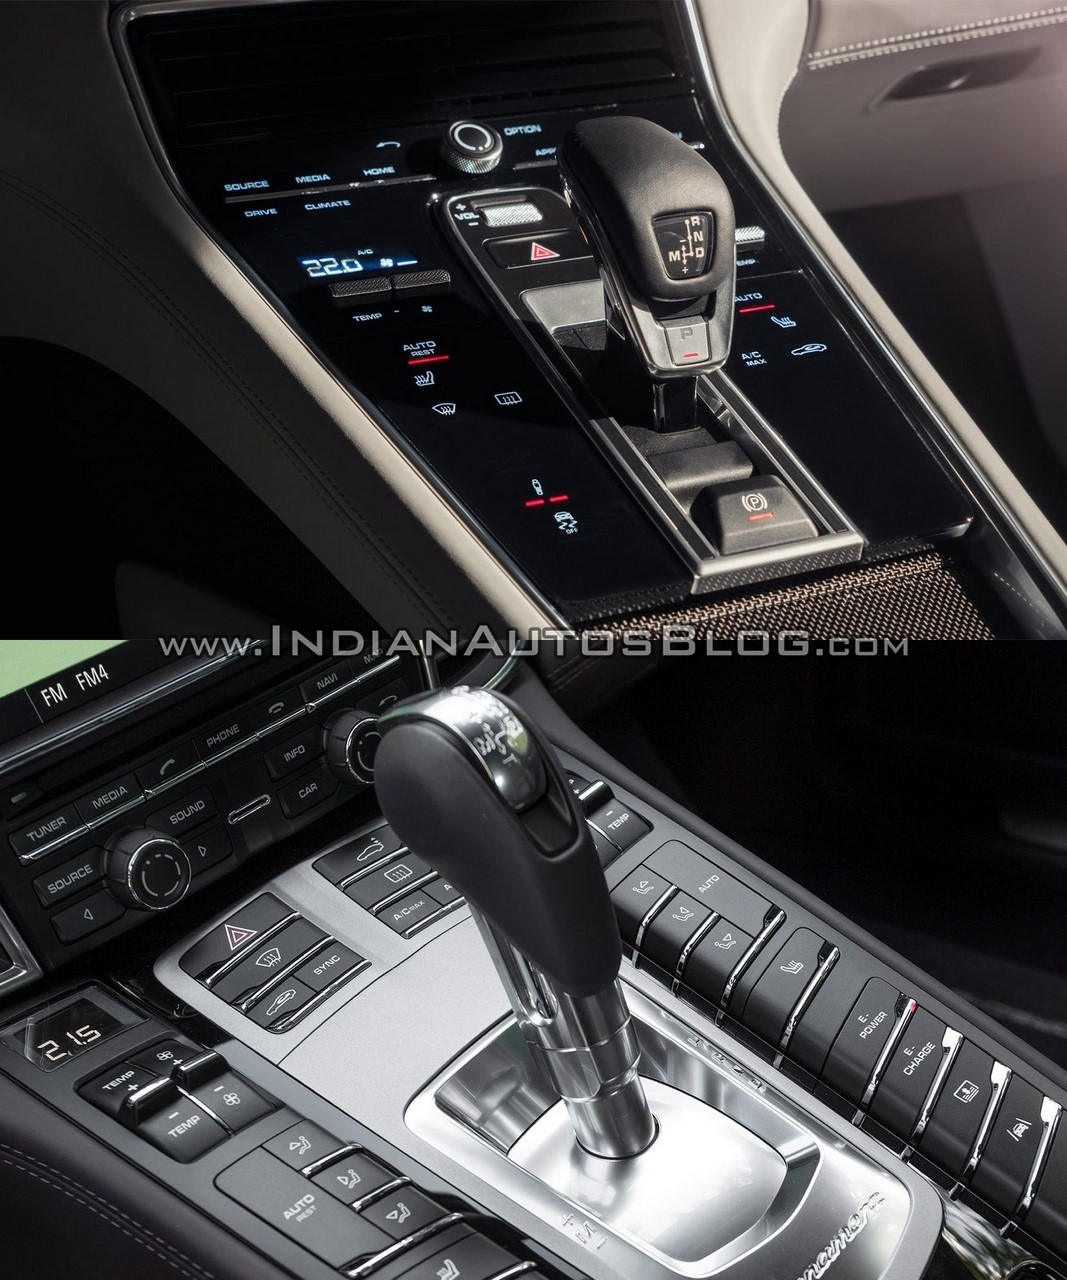 2017 Porsche Panamera Vs 2014 Interior Centre Tunnel